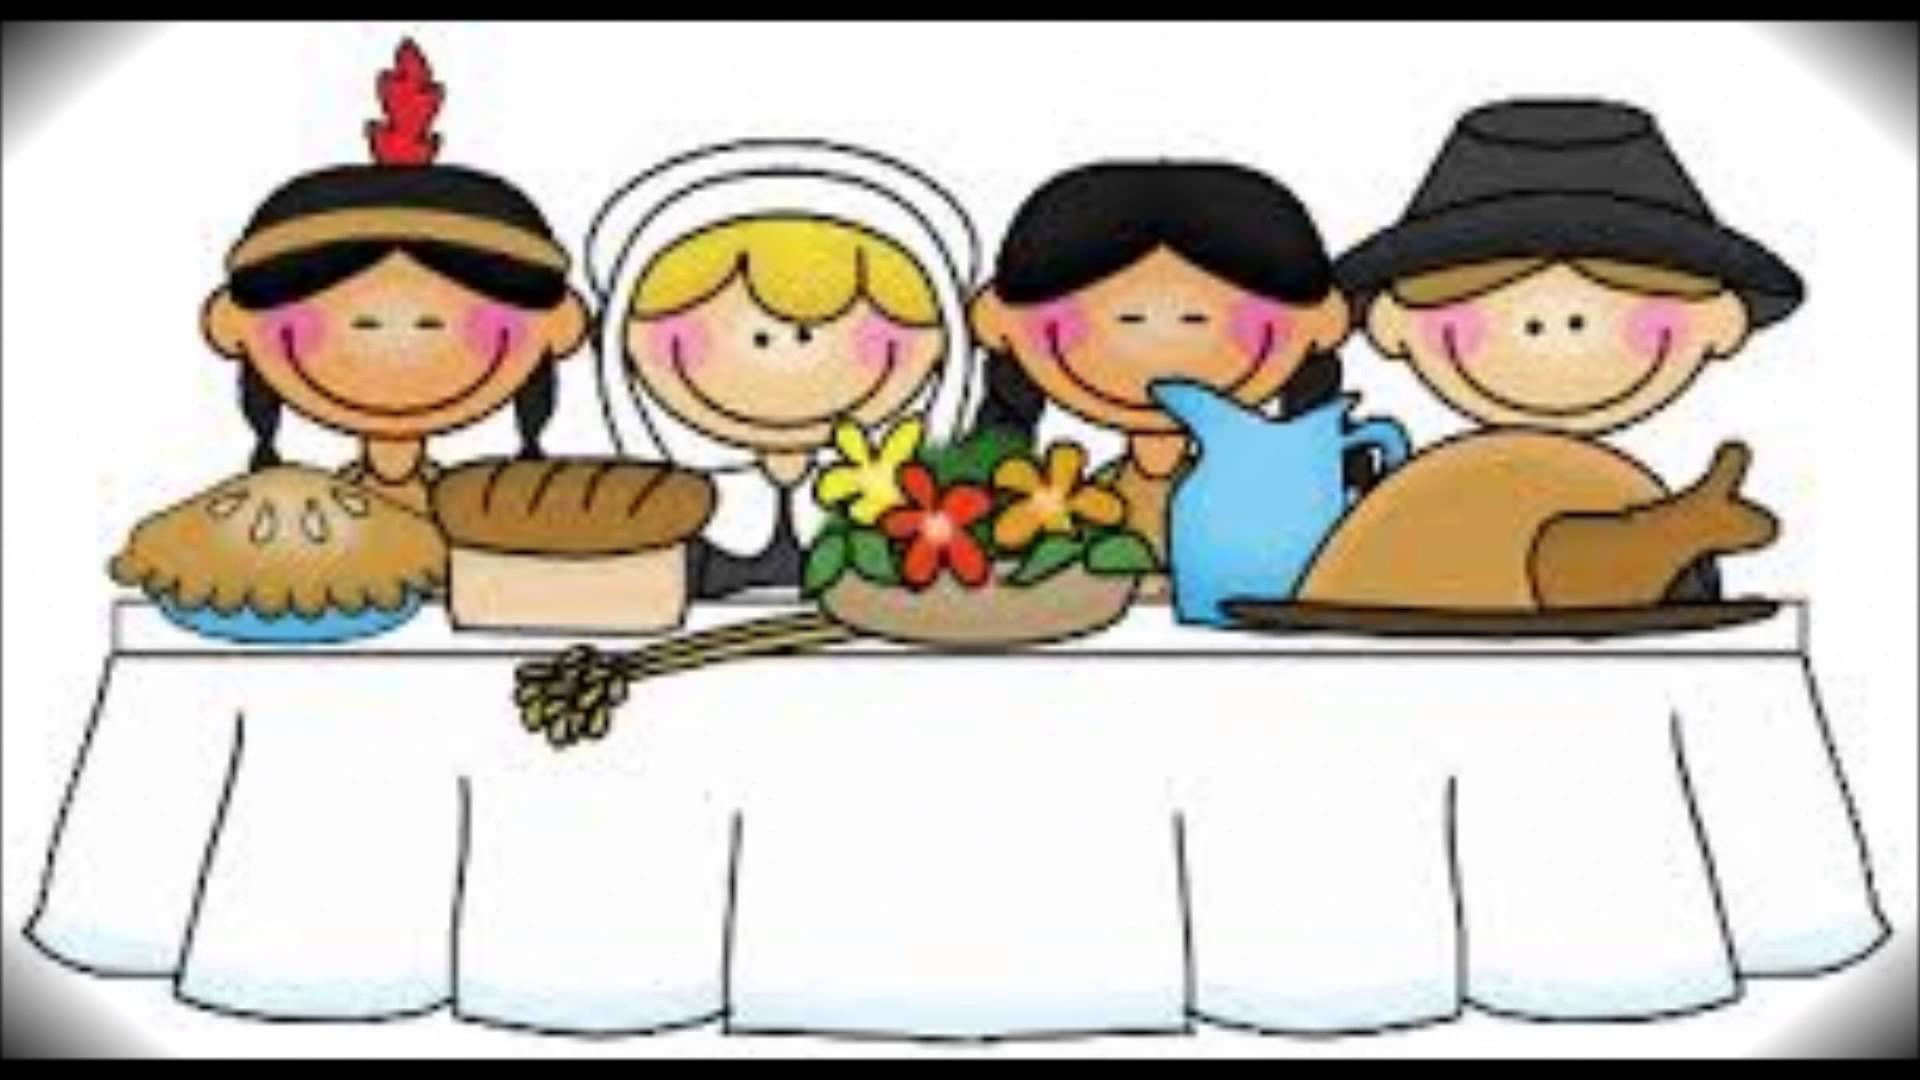 first thanksgiving clipart at getdrawings com free for personal rh getdrawings com thanksgiving clipart free thanksgiving clipart free